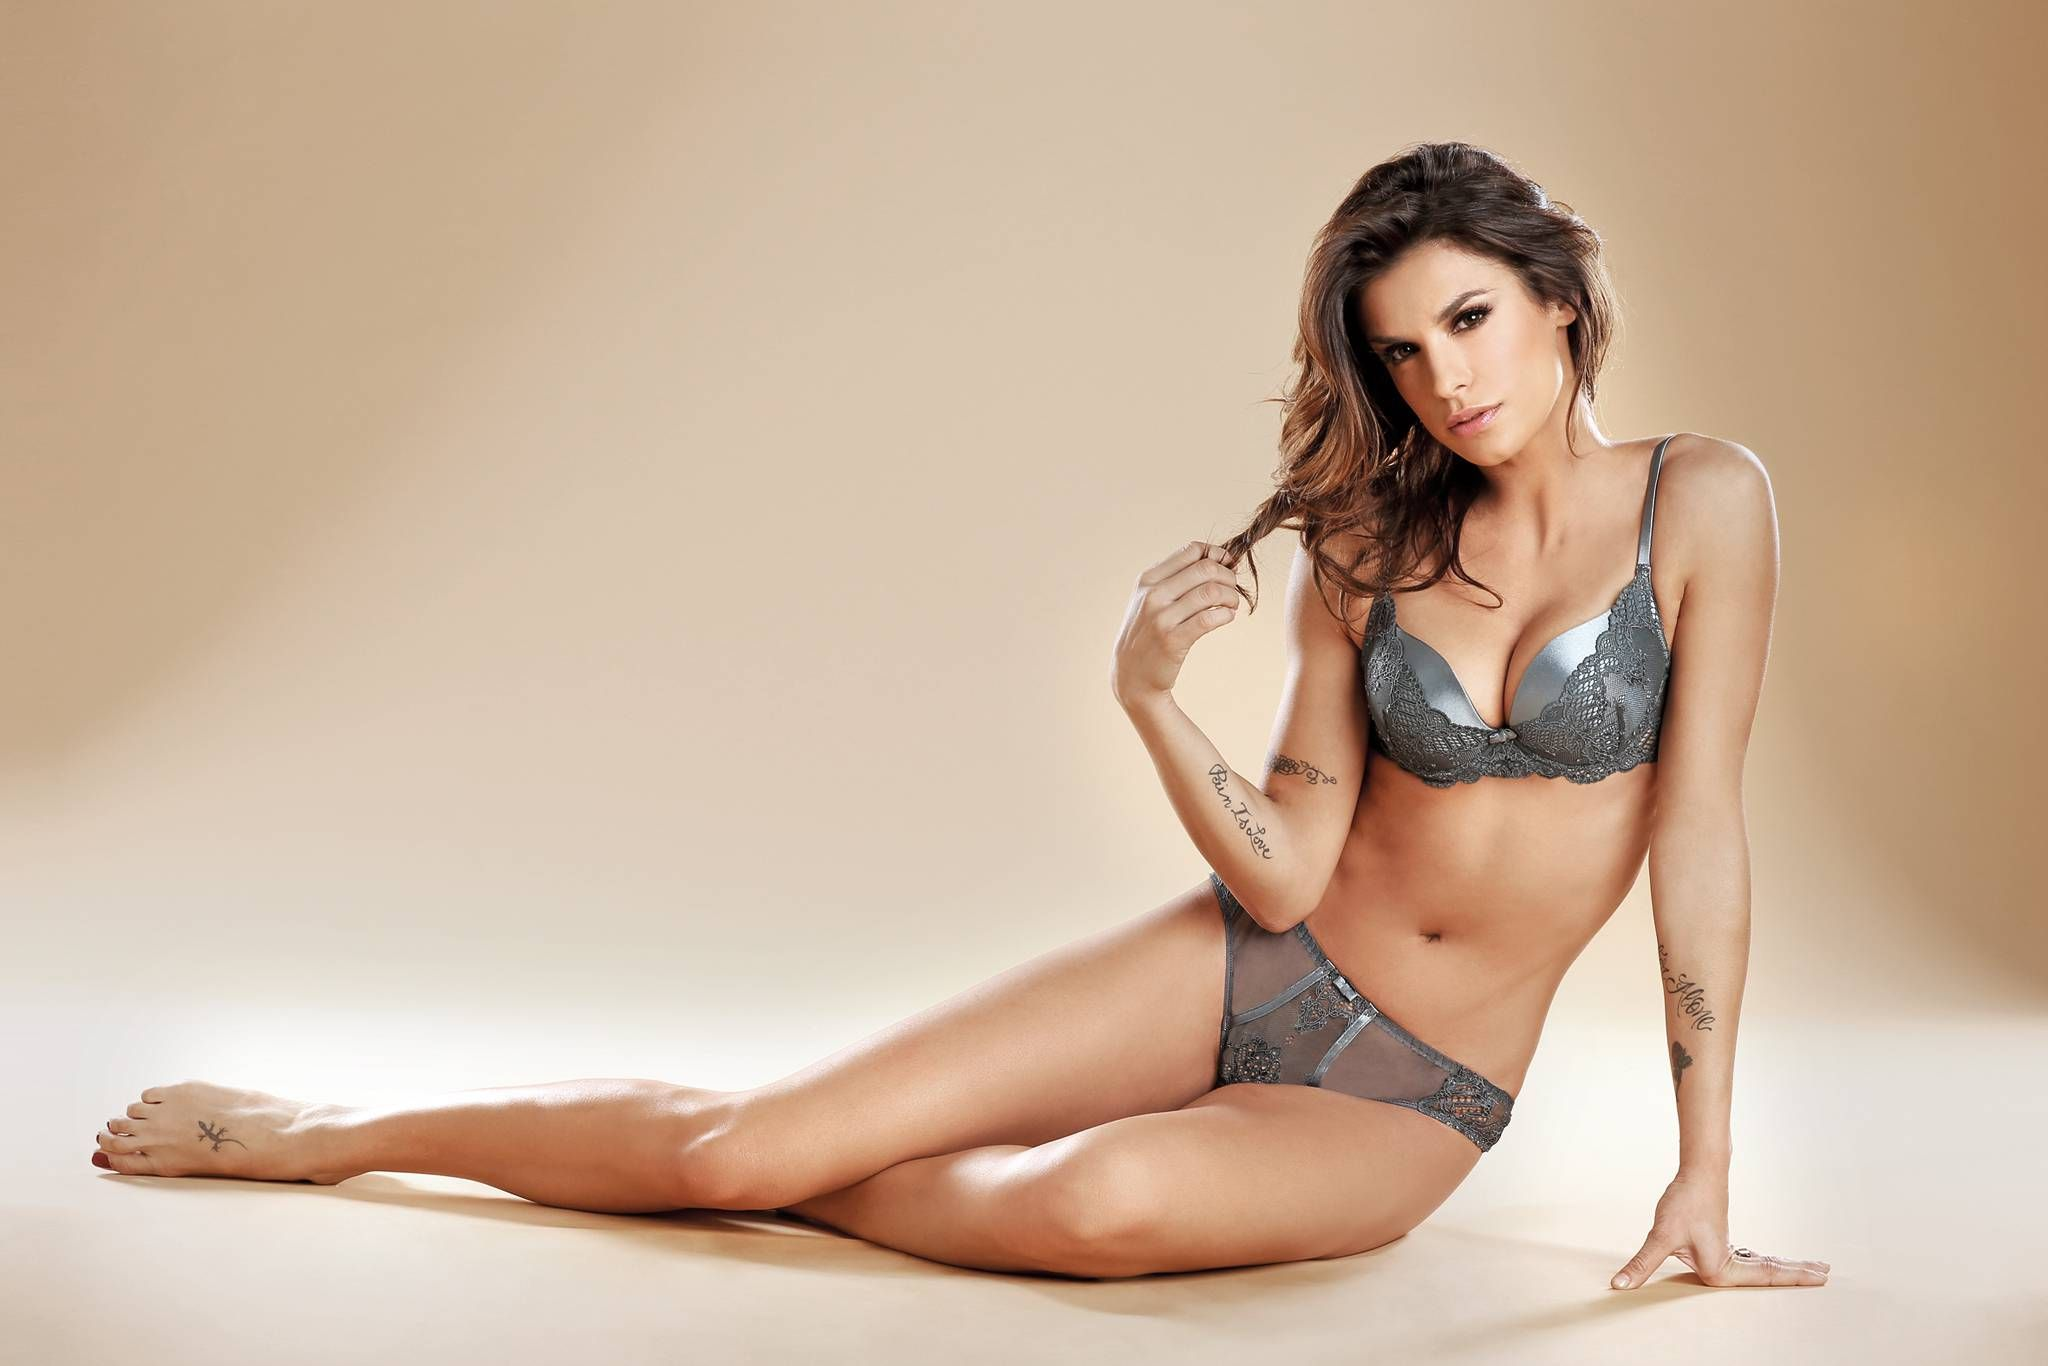 Check out Full Night Price List of Escort Services Chandigarh. Spend your  quality time with our hot and sexy Independent Chandigarh Escorts.